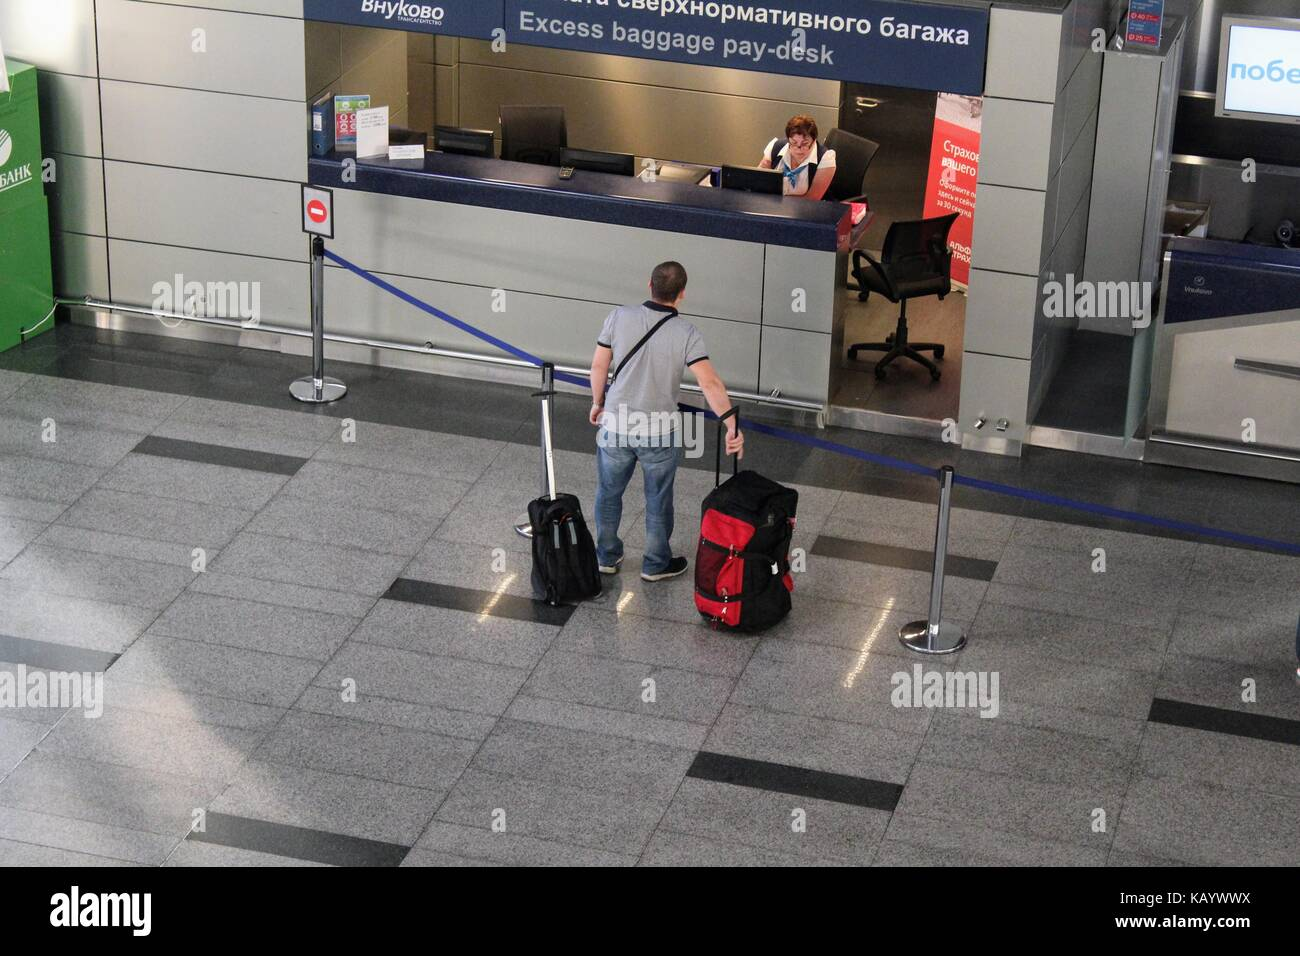 Excess baggage pay-desk at the Vnukovo International Airport (Moscow) - July 2017. - Stock Image